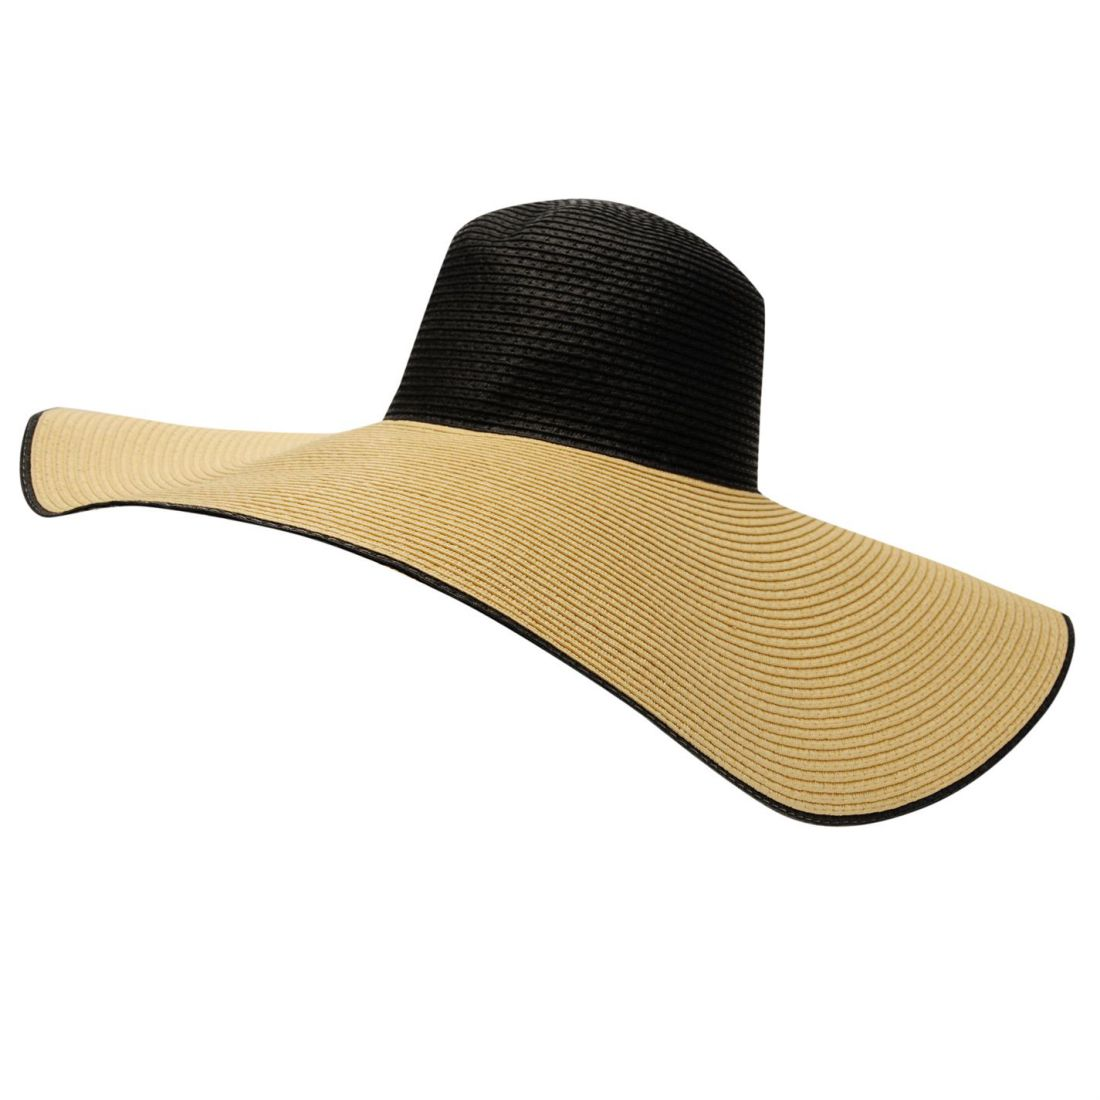 292f0e2c564 Calvin Klein Womens Summer Hat Sun Tonal Stitching for sale online ...